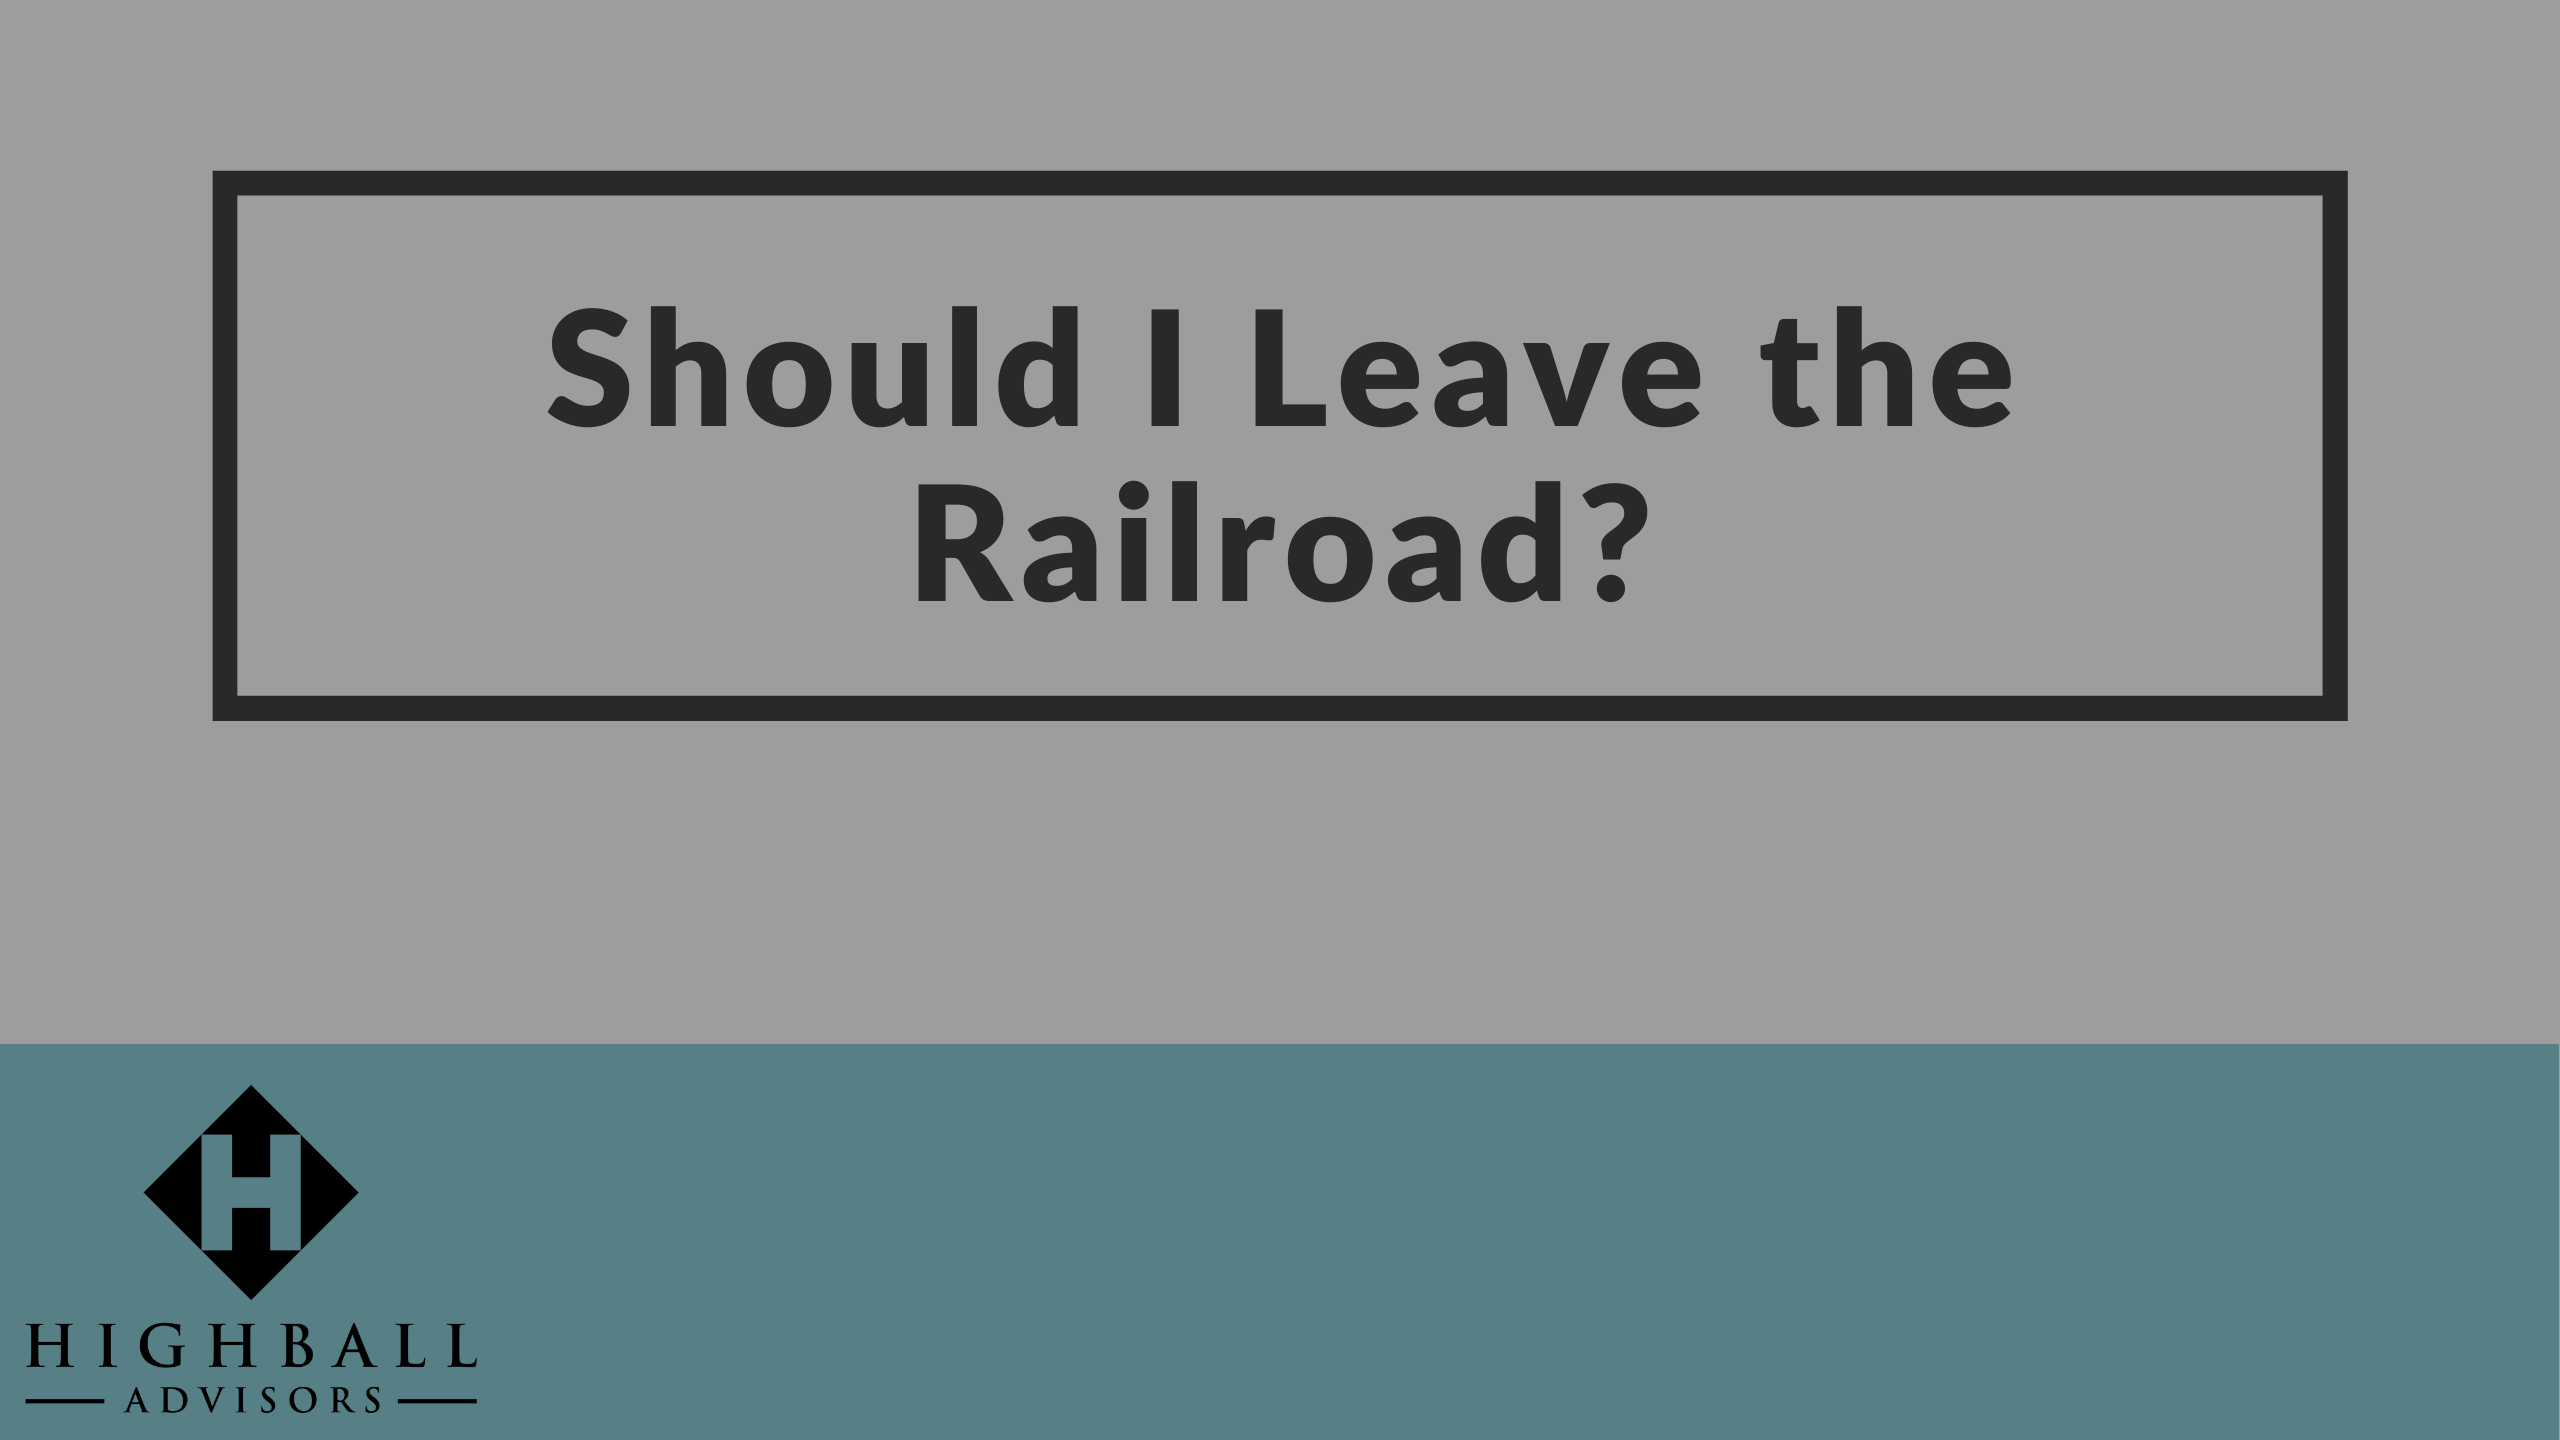 VIDEO: Should I Leave the Railroad? Thumbnail